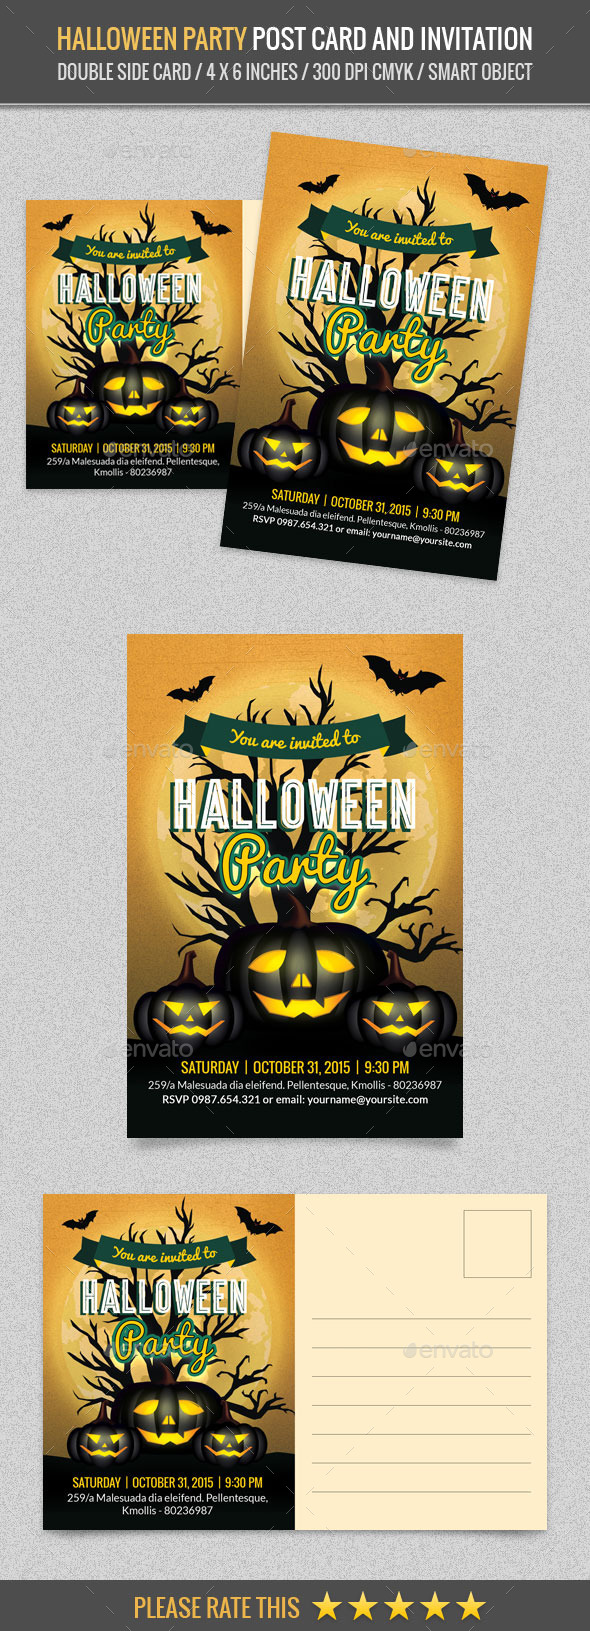 Halloween Party Post Card Template - Cards & Invites Print Templates